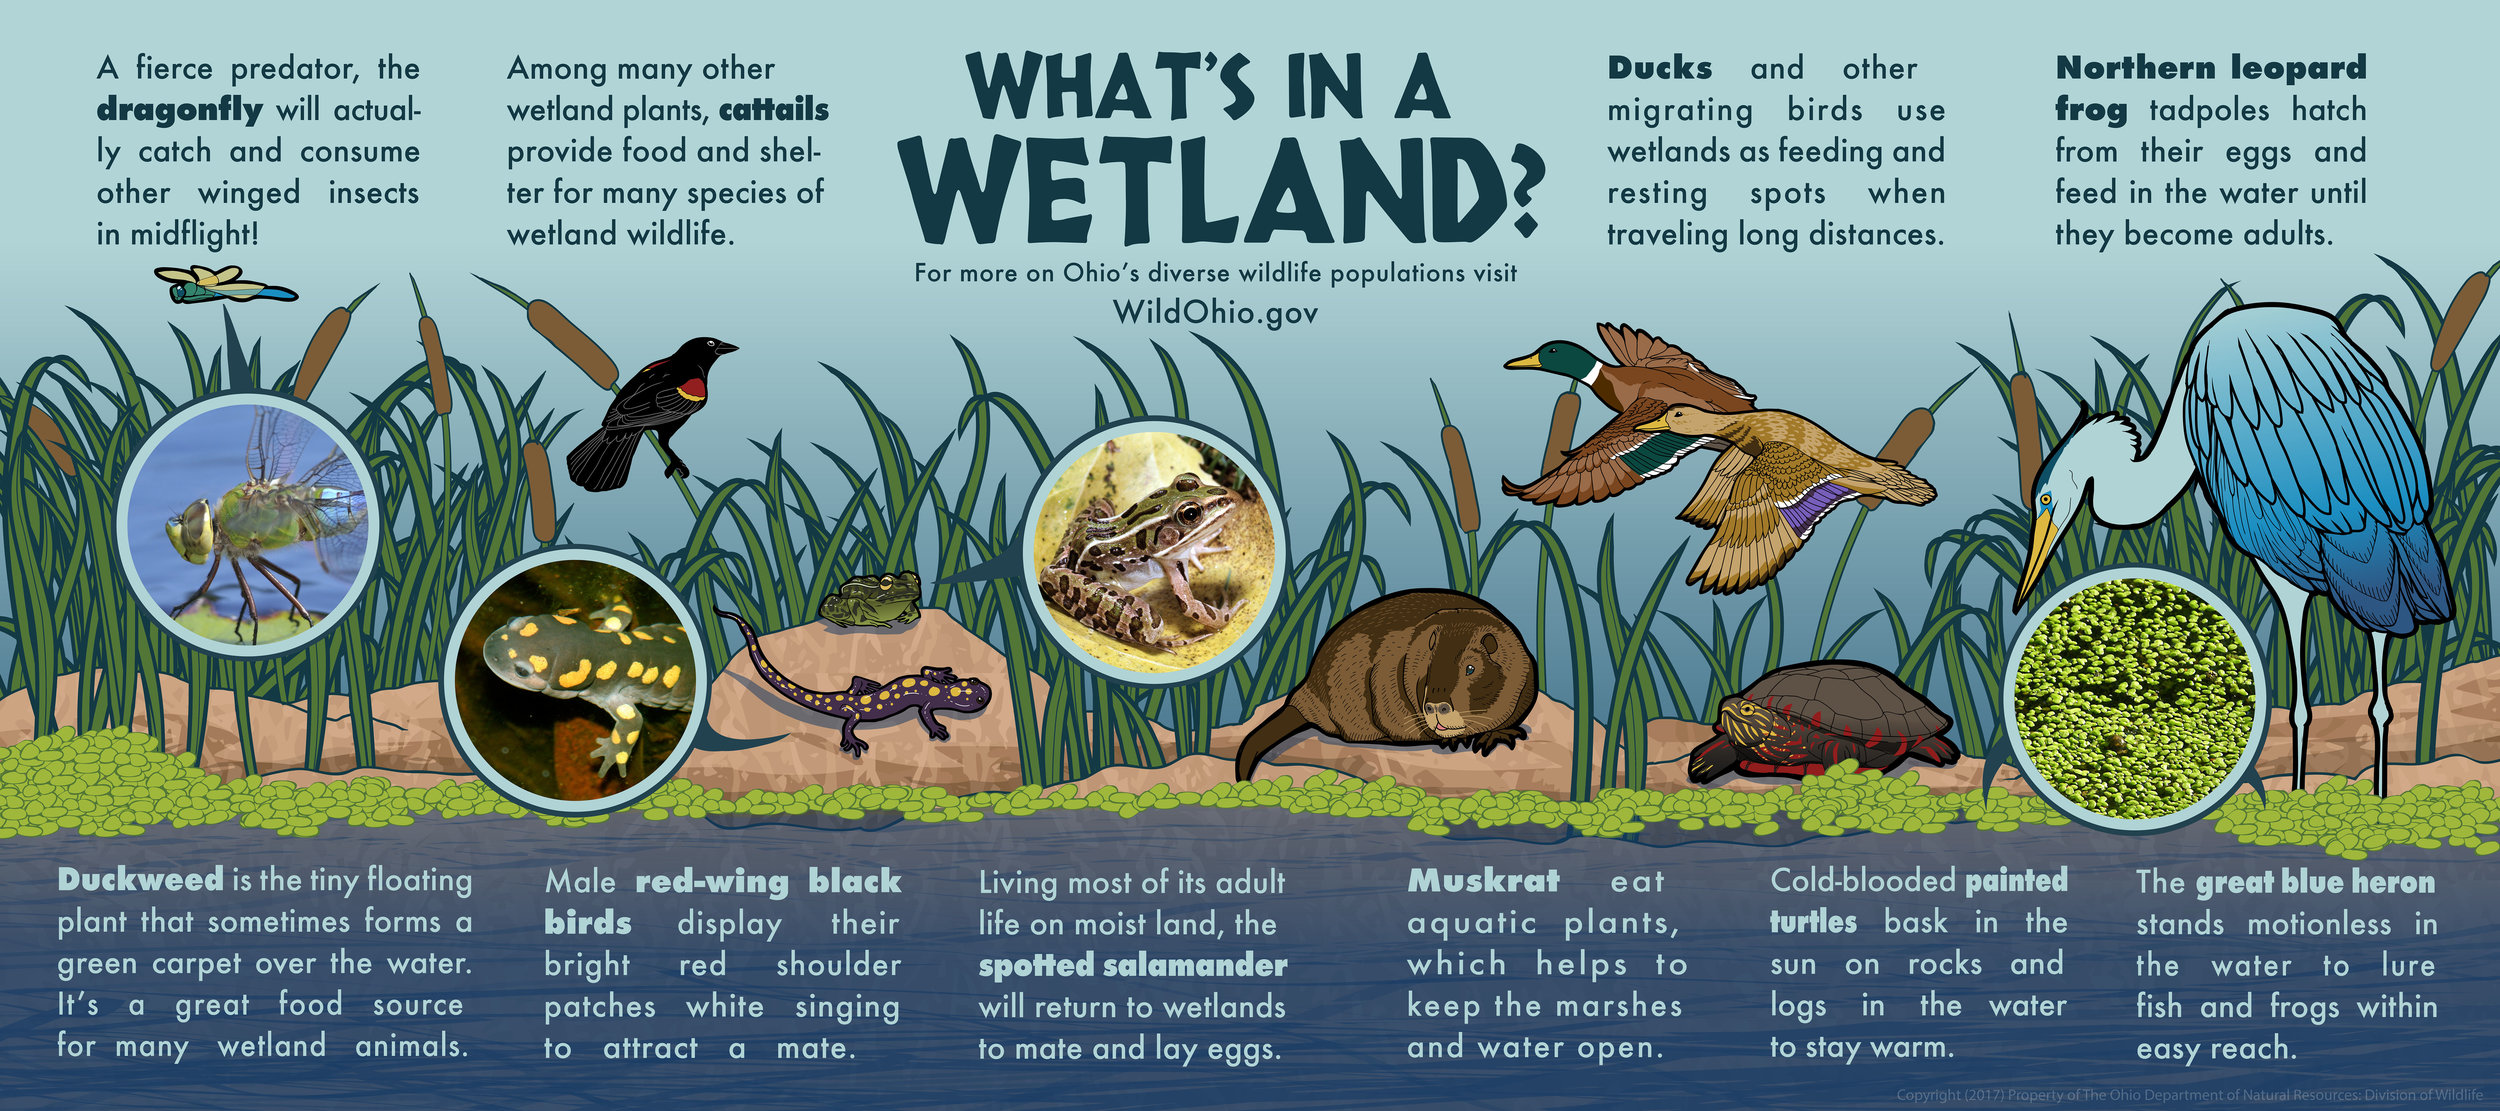 A poster I did which is on display in the pond area in front of the bird enclosures.